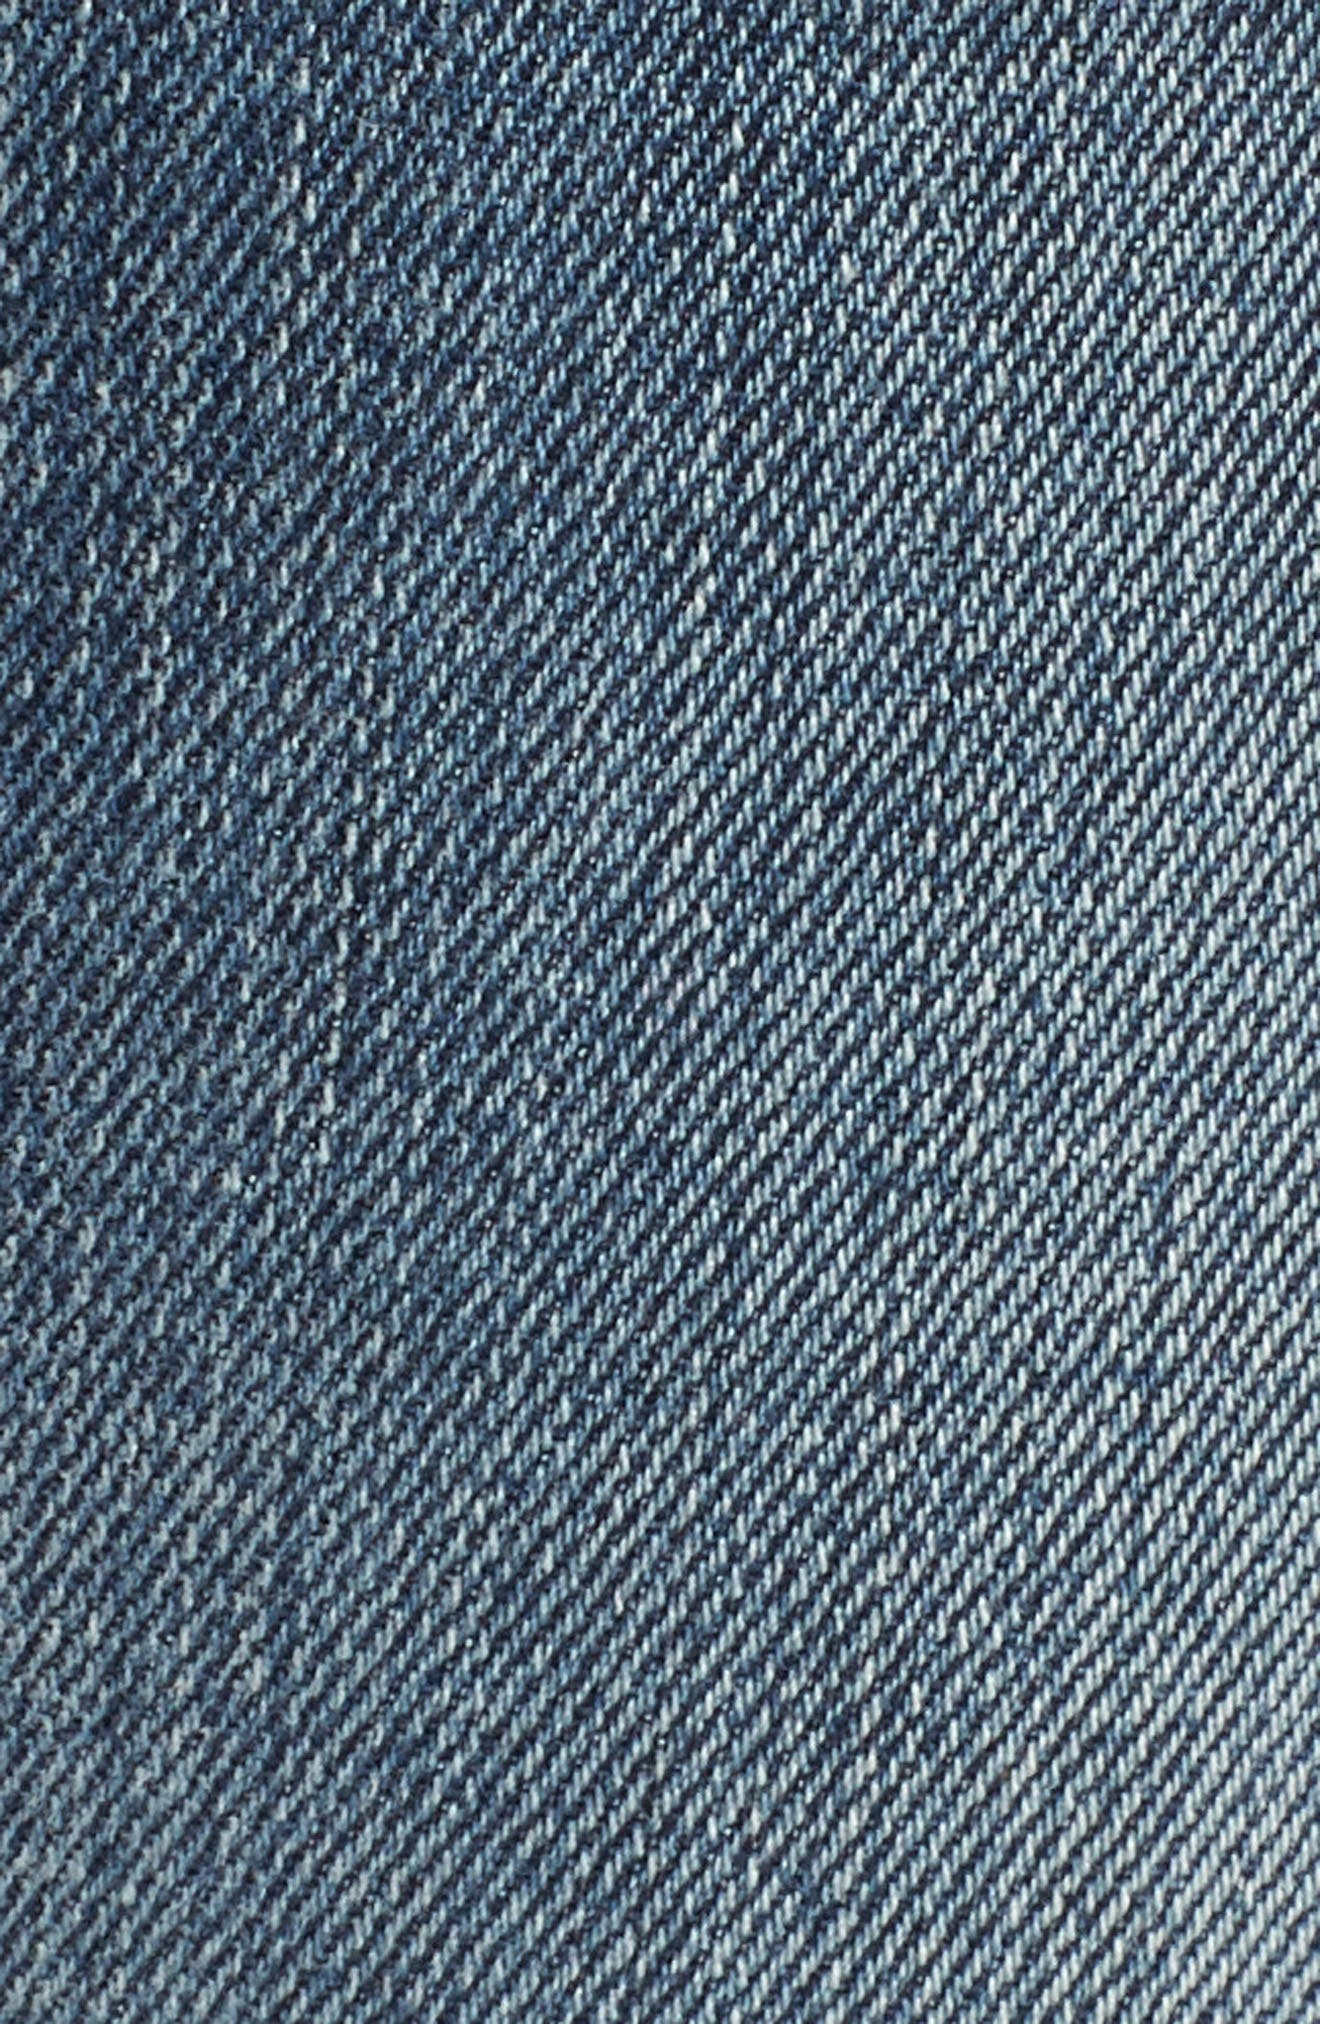 7 FOR ALL MANKIND<SUP>®</SUP>, High Waist Fray Crop Bootcut Jeans, Alternate thumbnail 6, color, 400